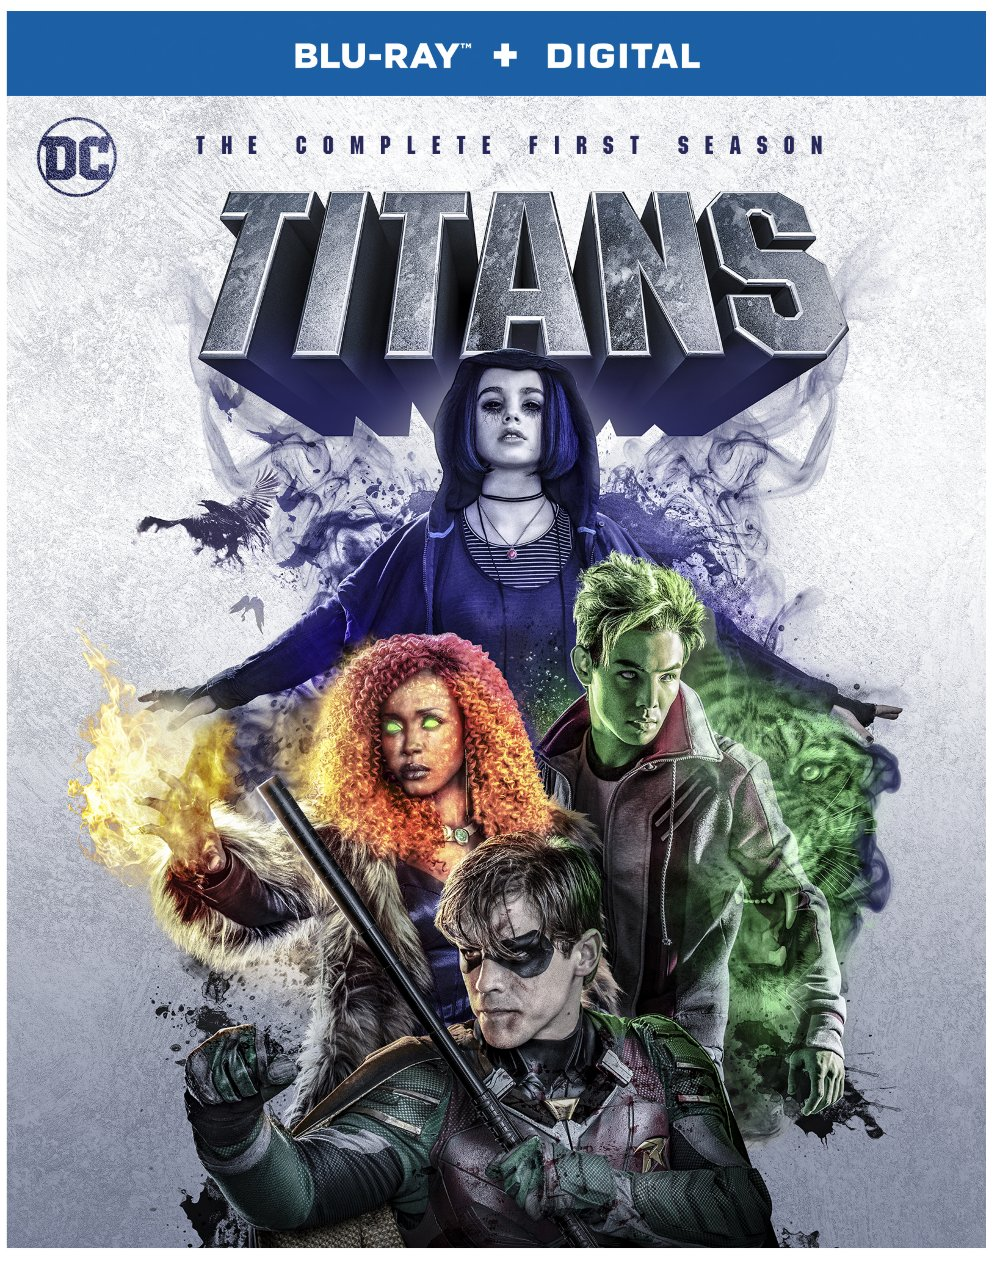 Titans S1 BD Box Art2.JPEG